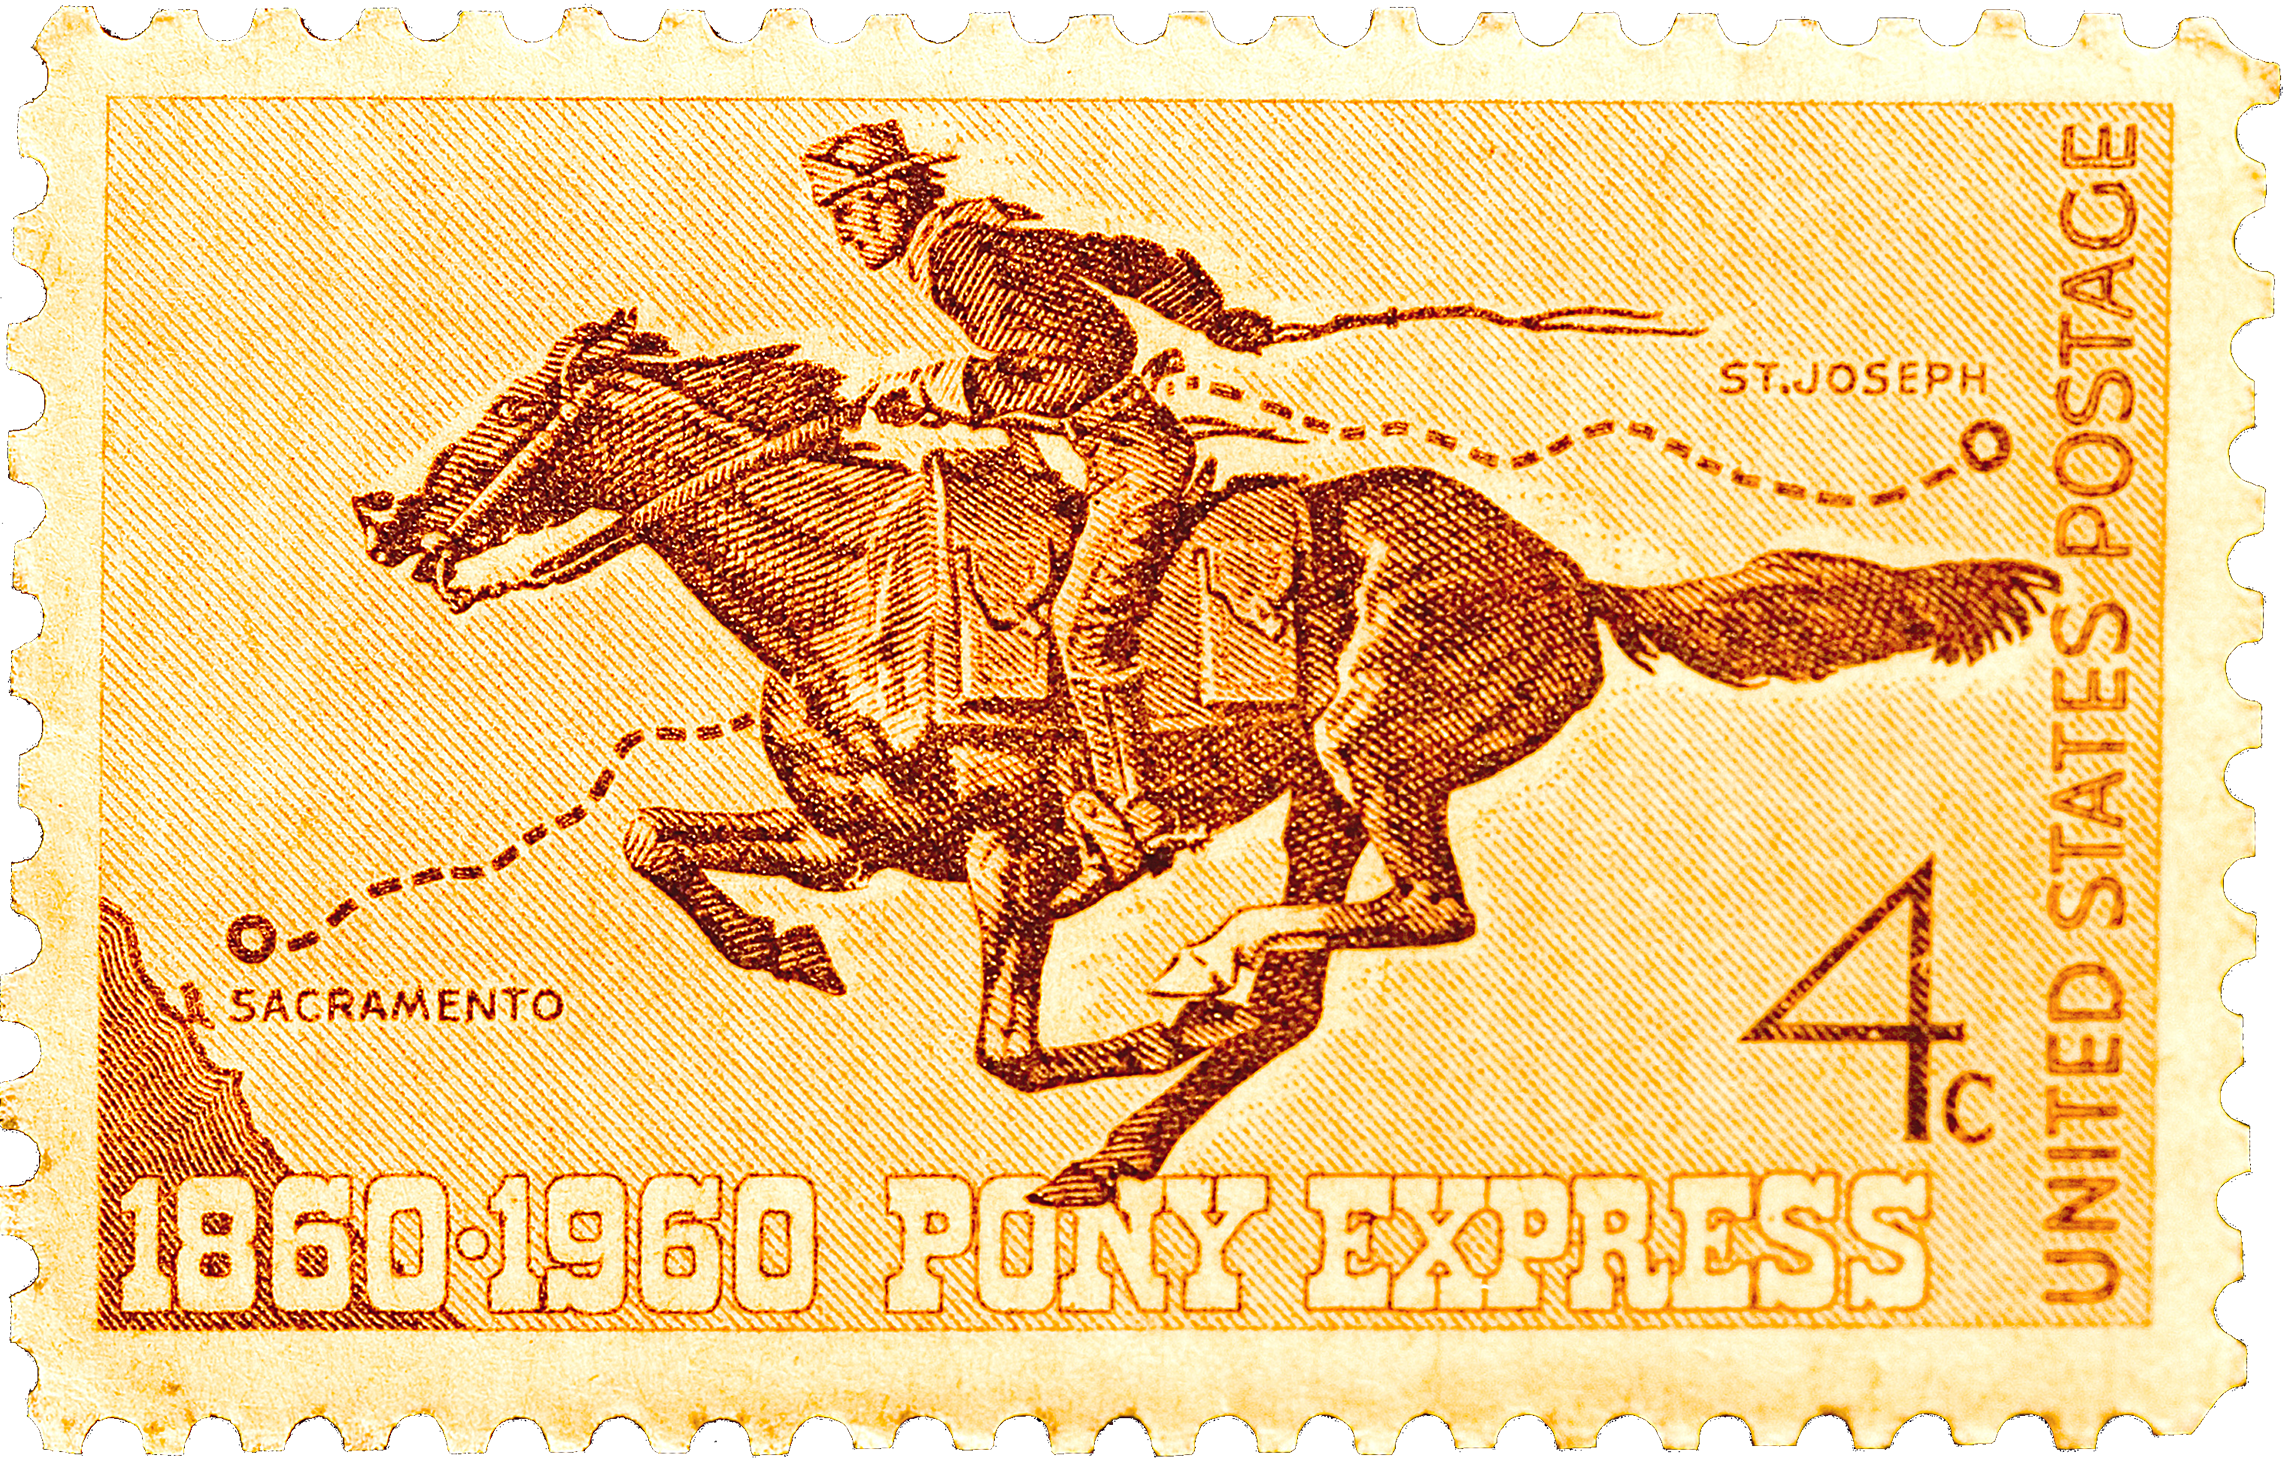 Pony Express Centennial Celebration USPS Stamp